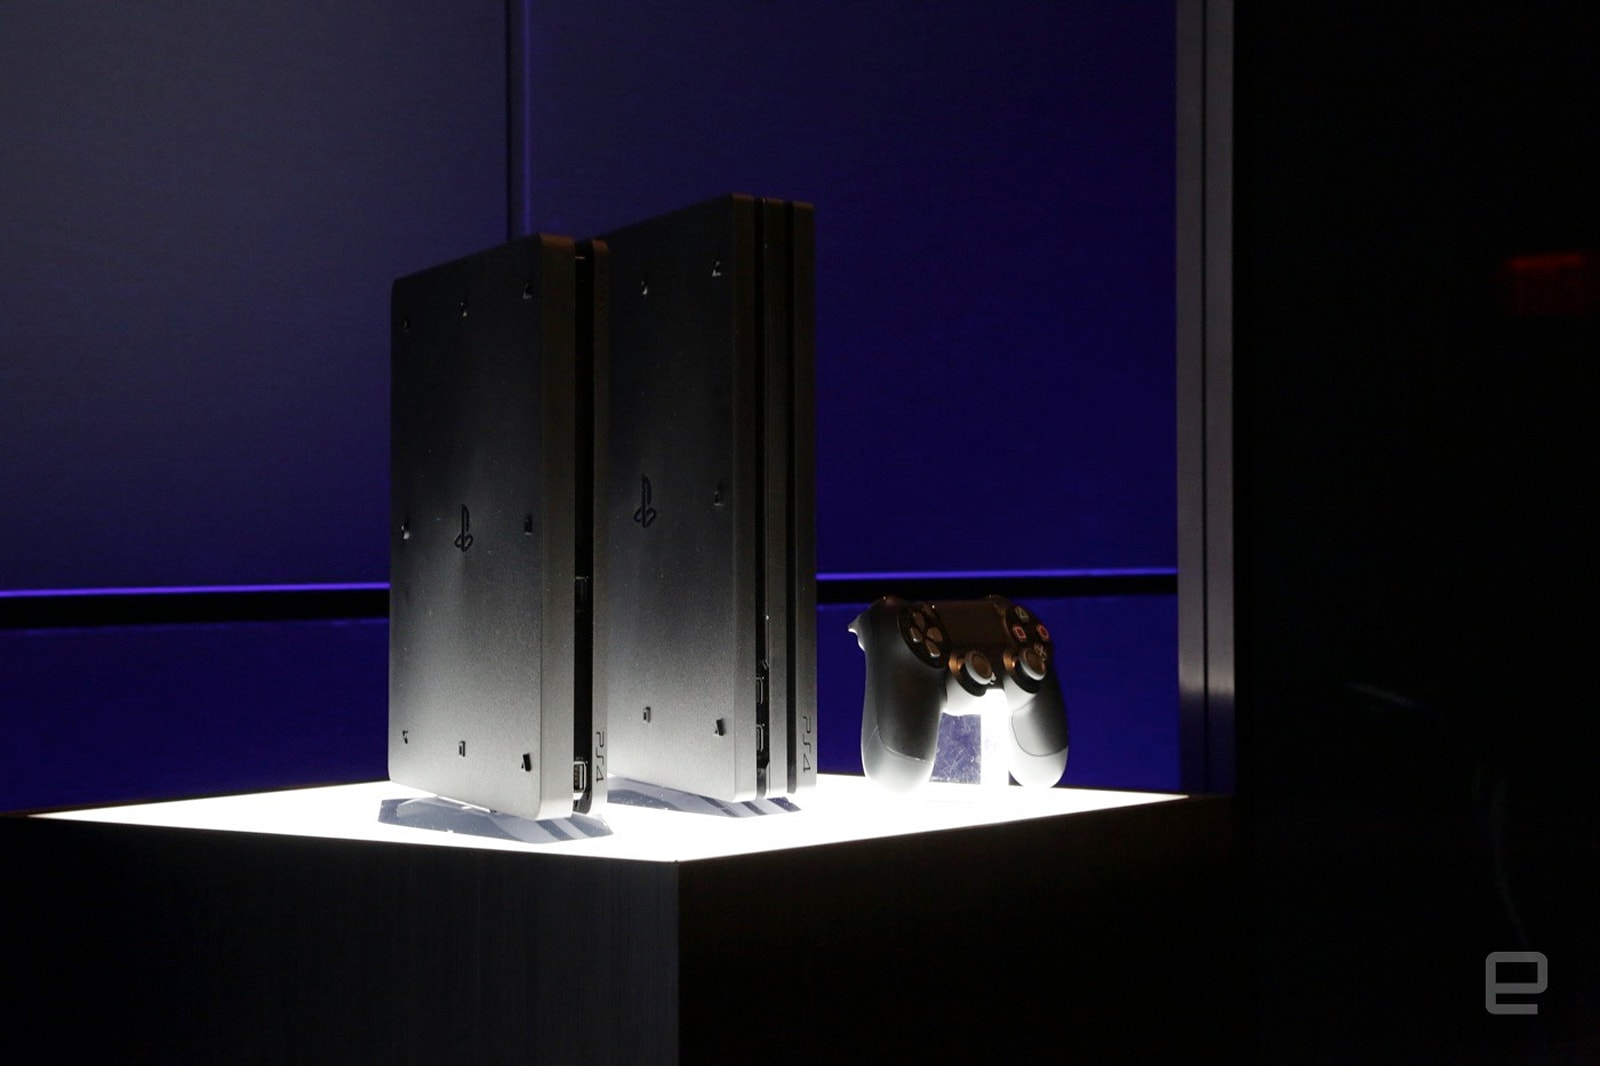 sony 39 s playstation 4 pro reveal was a confident step forward. Black Bedroom Furniture Sets. Home Design Ideas